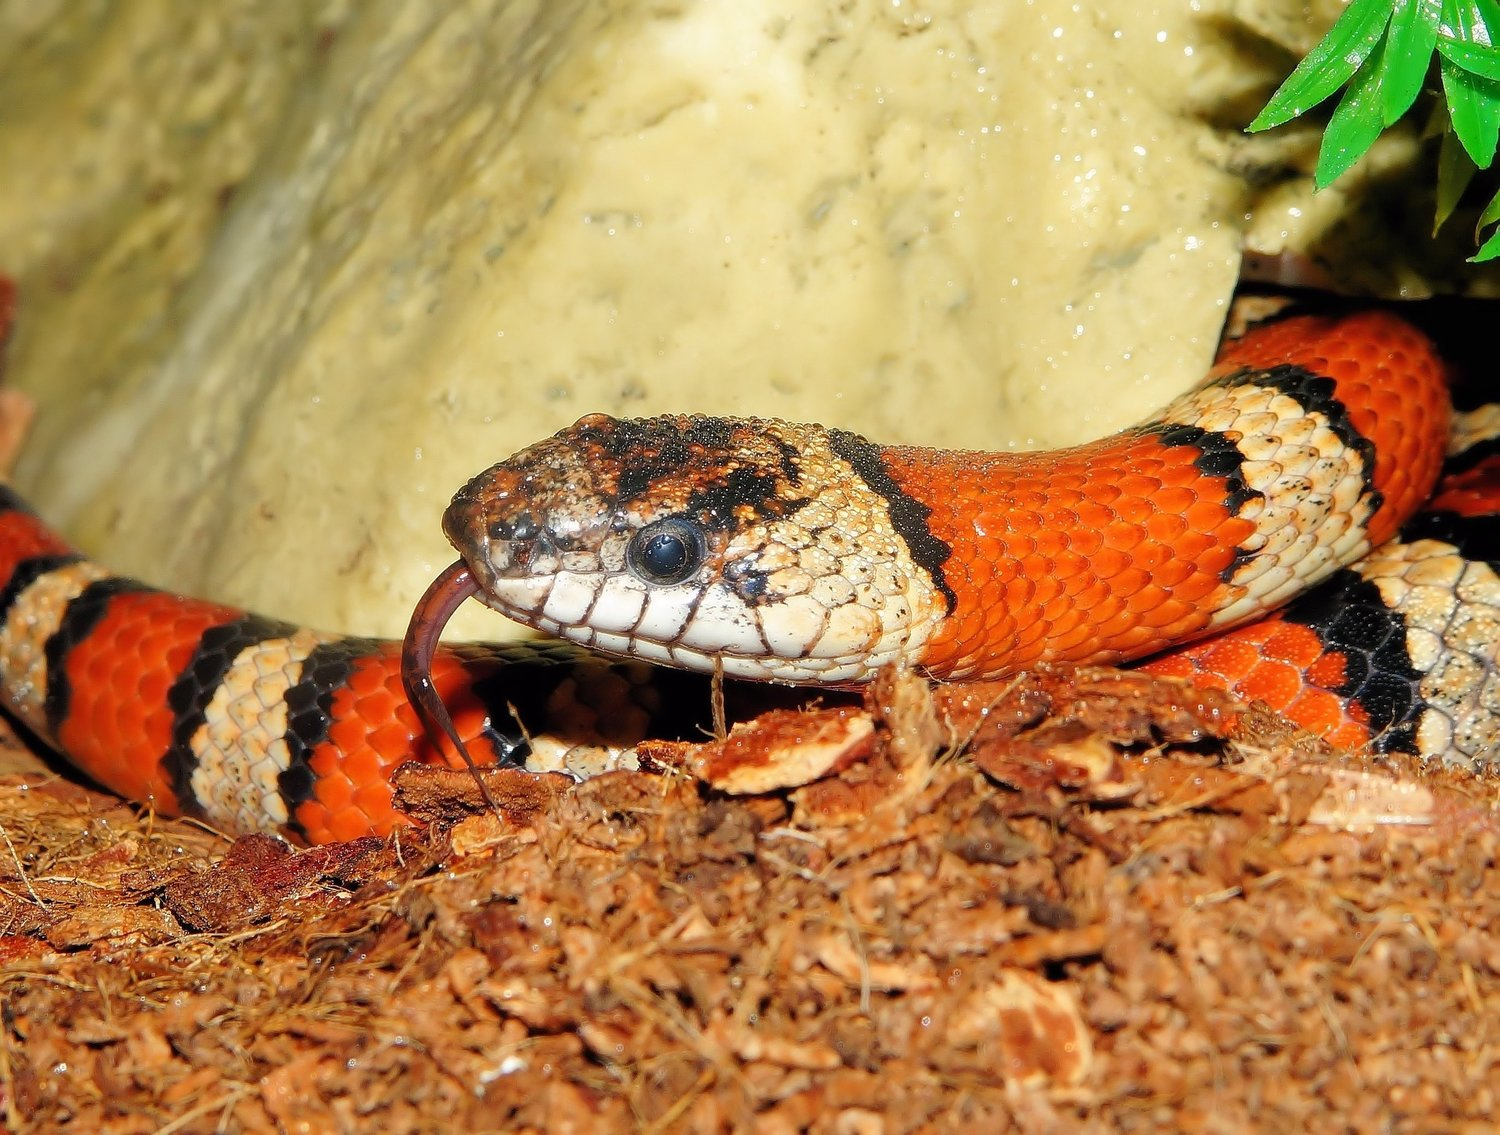 File photo - The colorful king snake, while the reverse of ugly, is a mixed bag in terms of garden health—it will prey on unwanted small animals that get into your garden, but also on helpful birds and frogs.